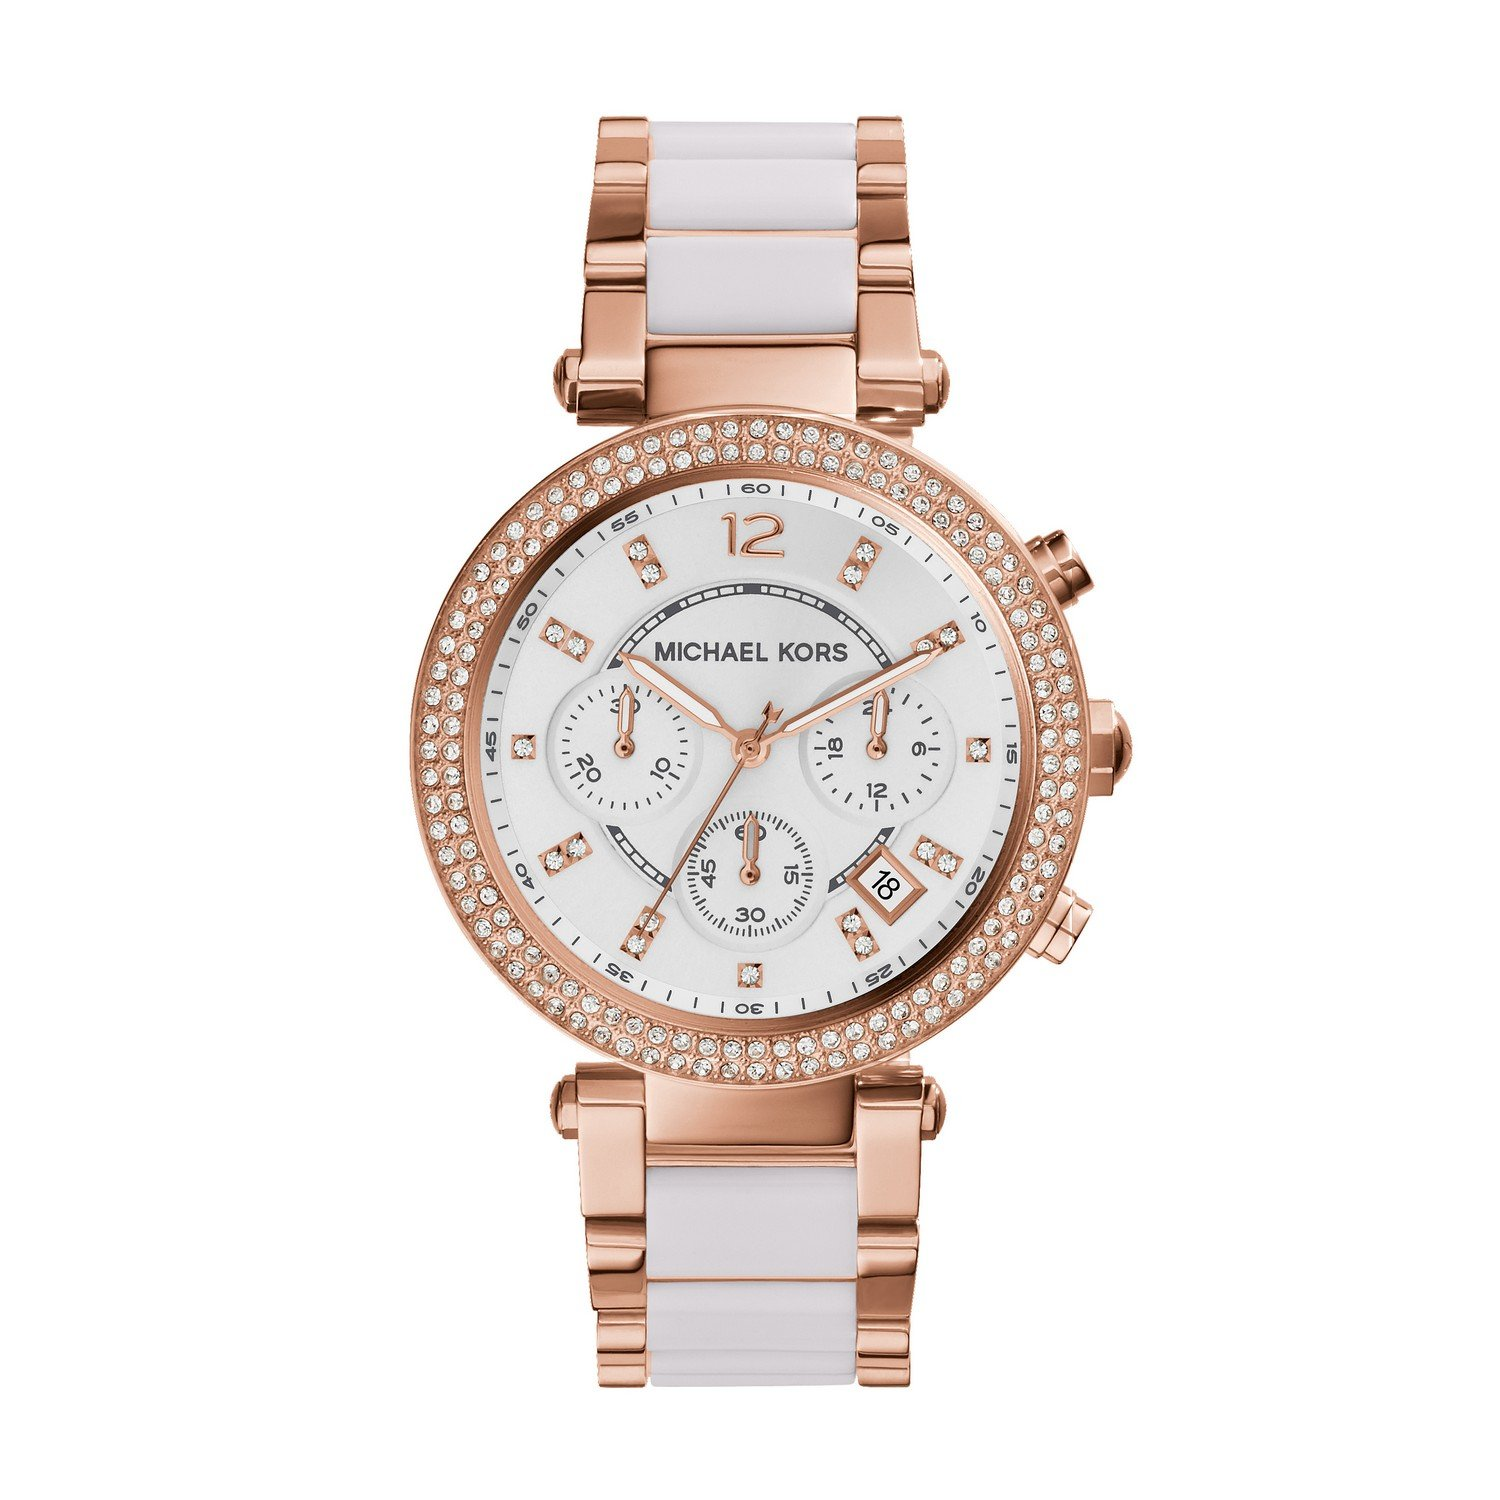 79bcc7e914ab Michael Kors Women s Watch MK5774  Michael Kors  Amazon.co.uk  Watches